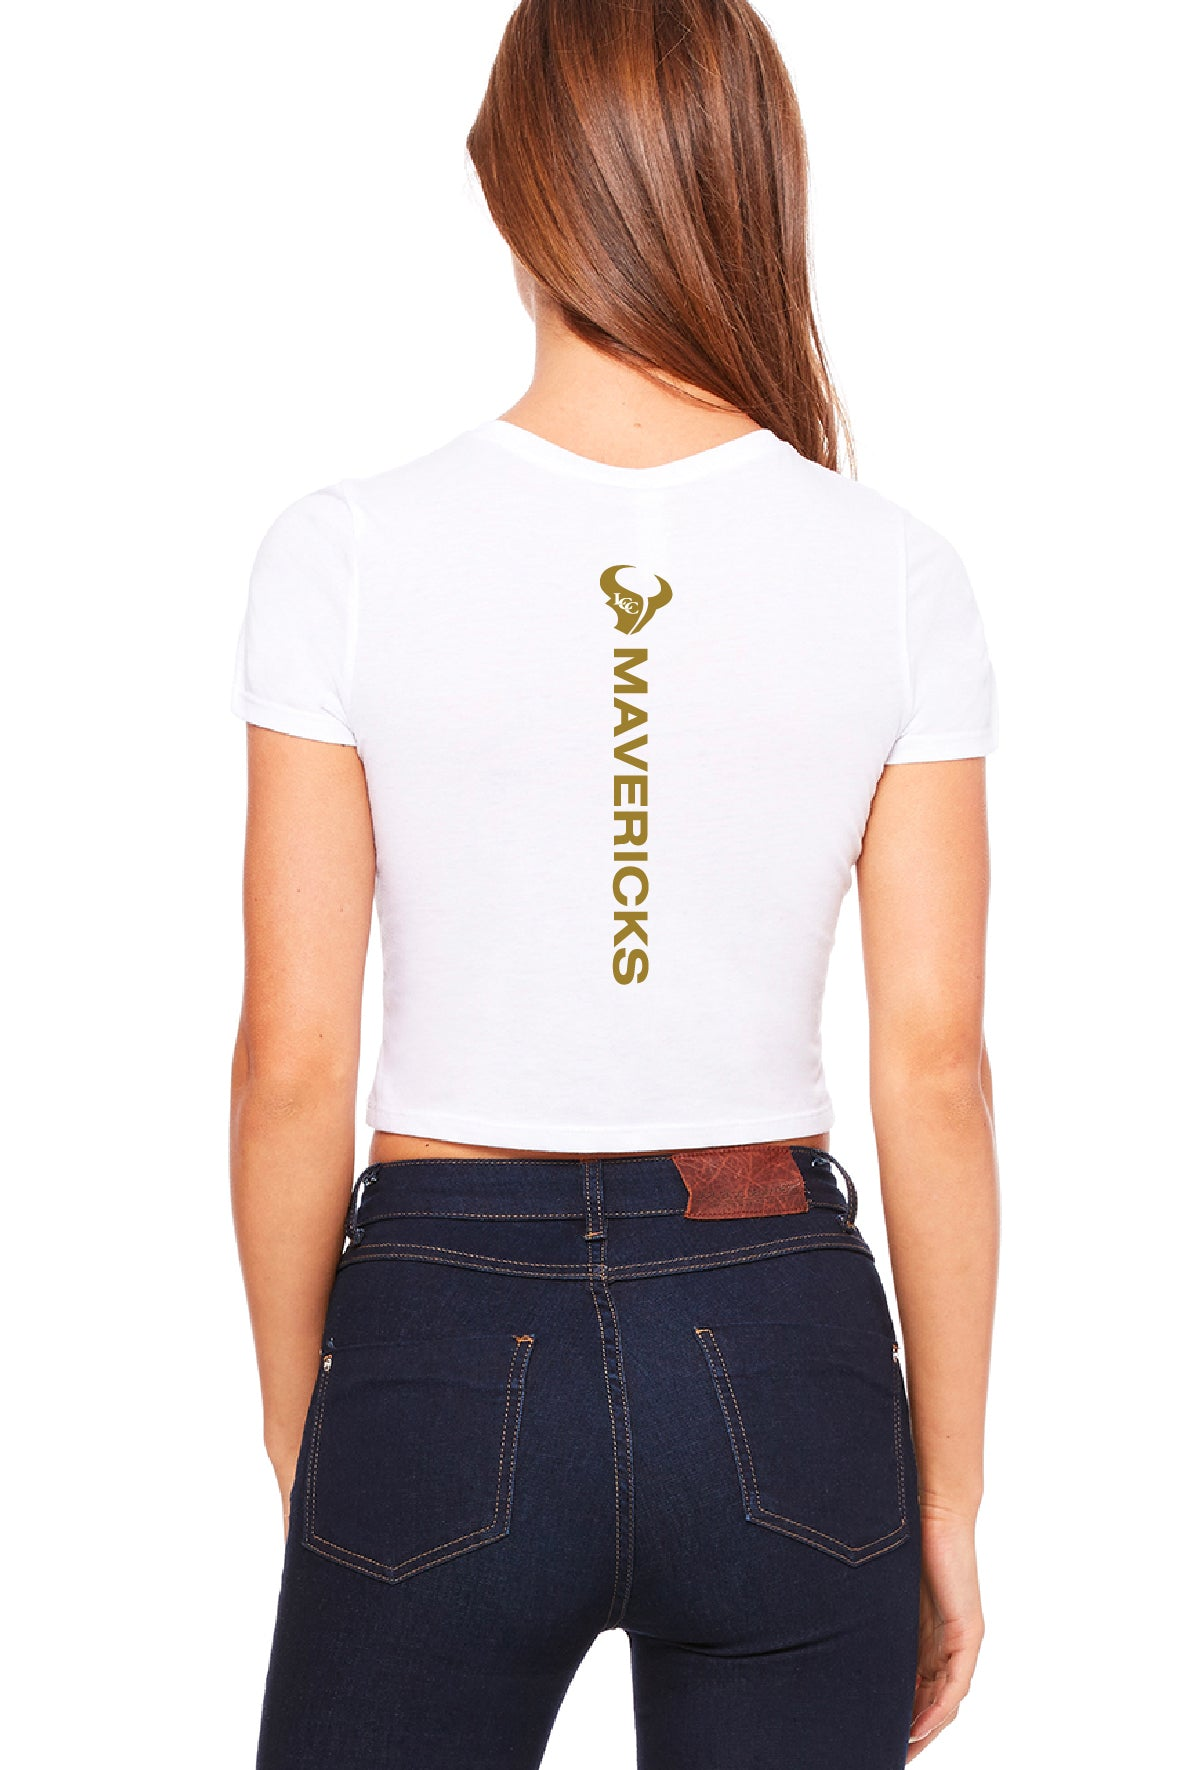 White Out Mavericks Juniors Style Crop Tee